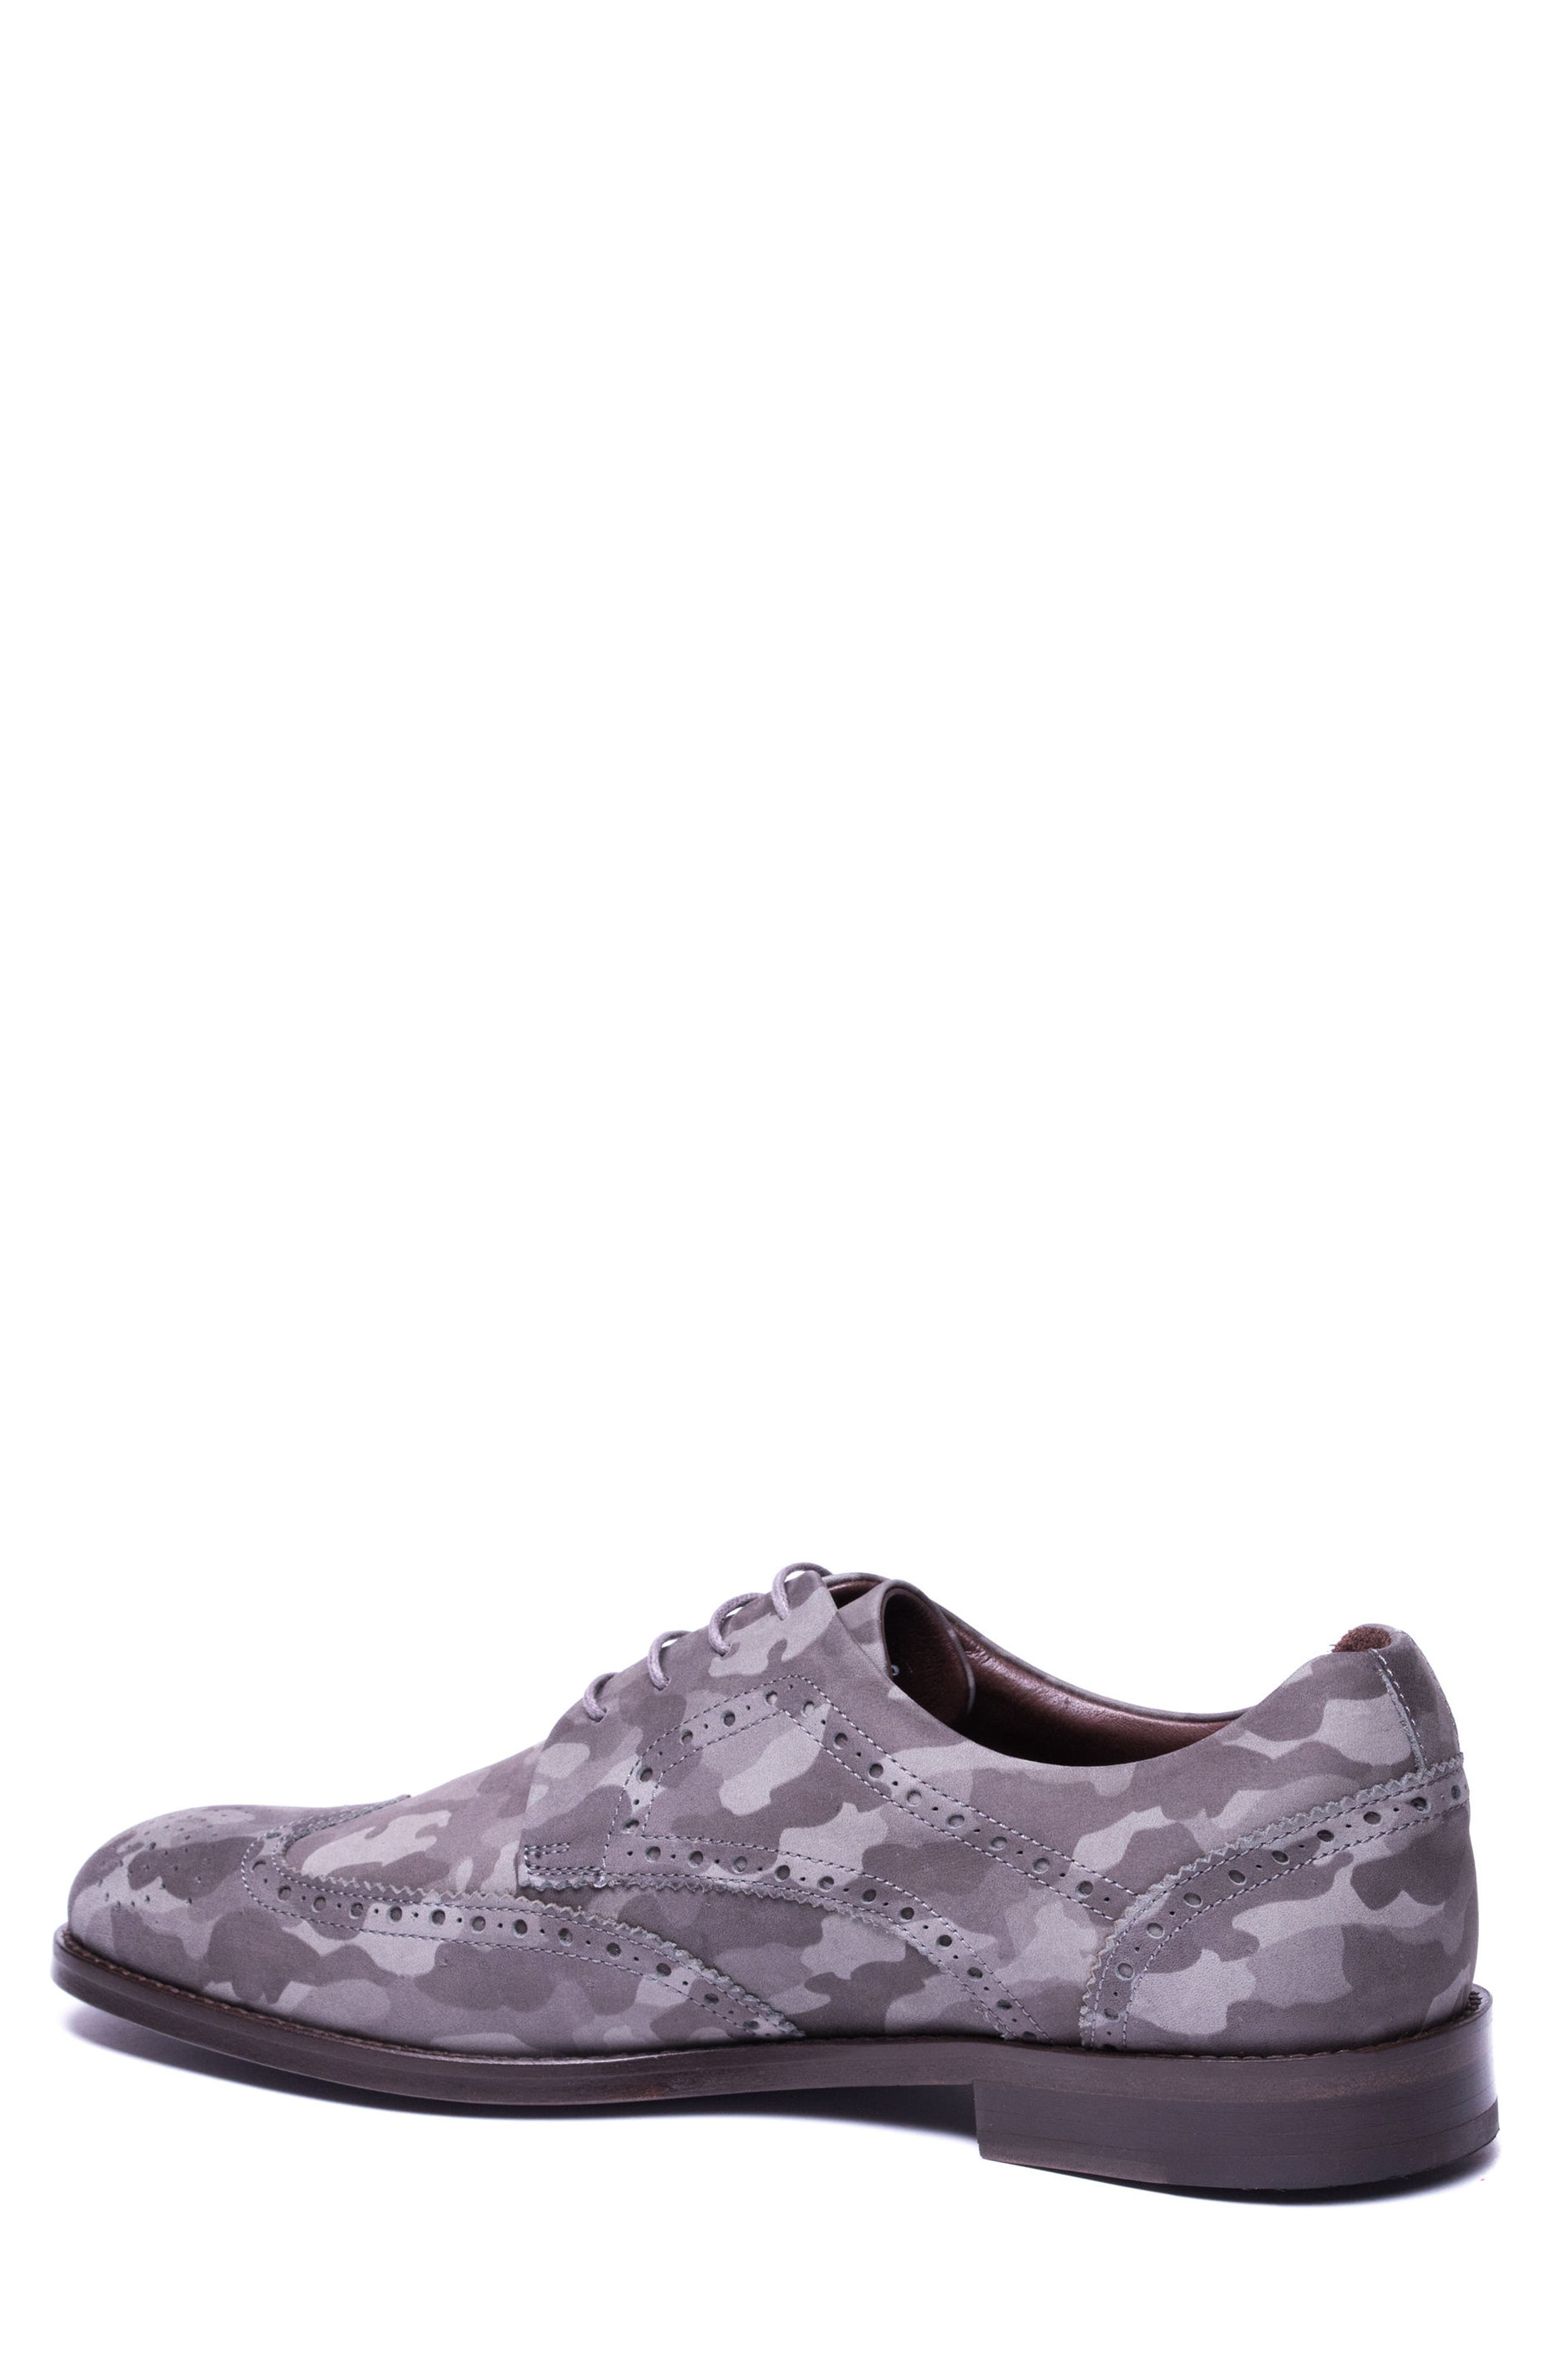 Caleb Camo Wingtip Derby,                             Alternate thumbnail 2, color,                             GREY CAMO LEATHER